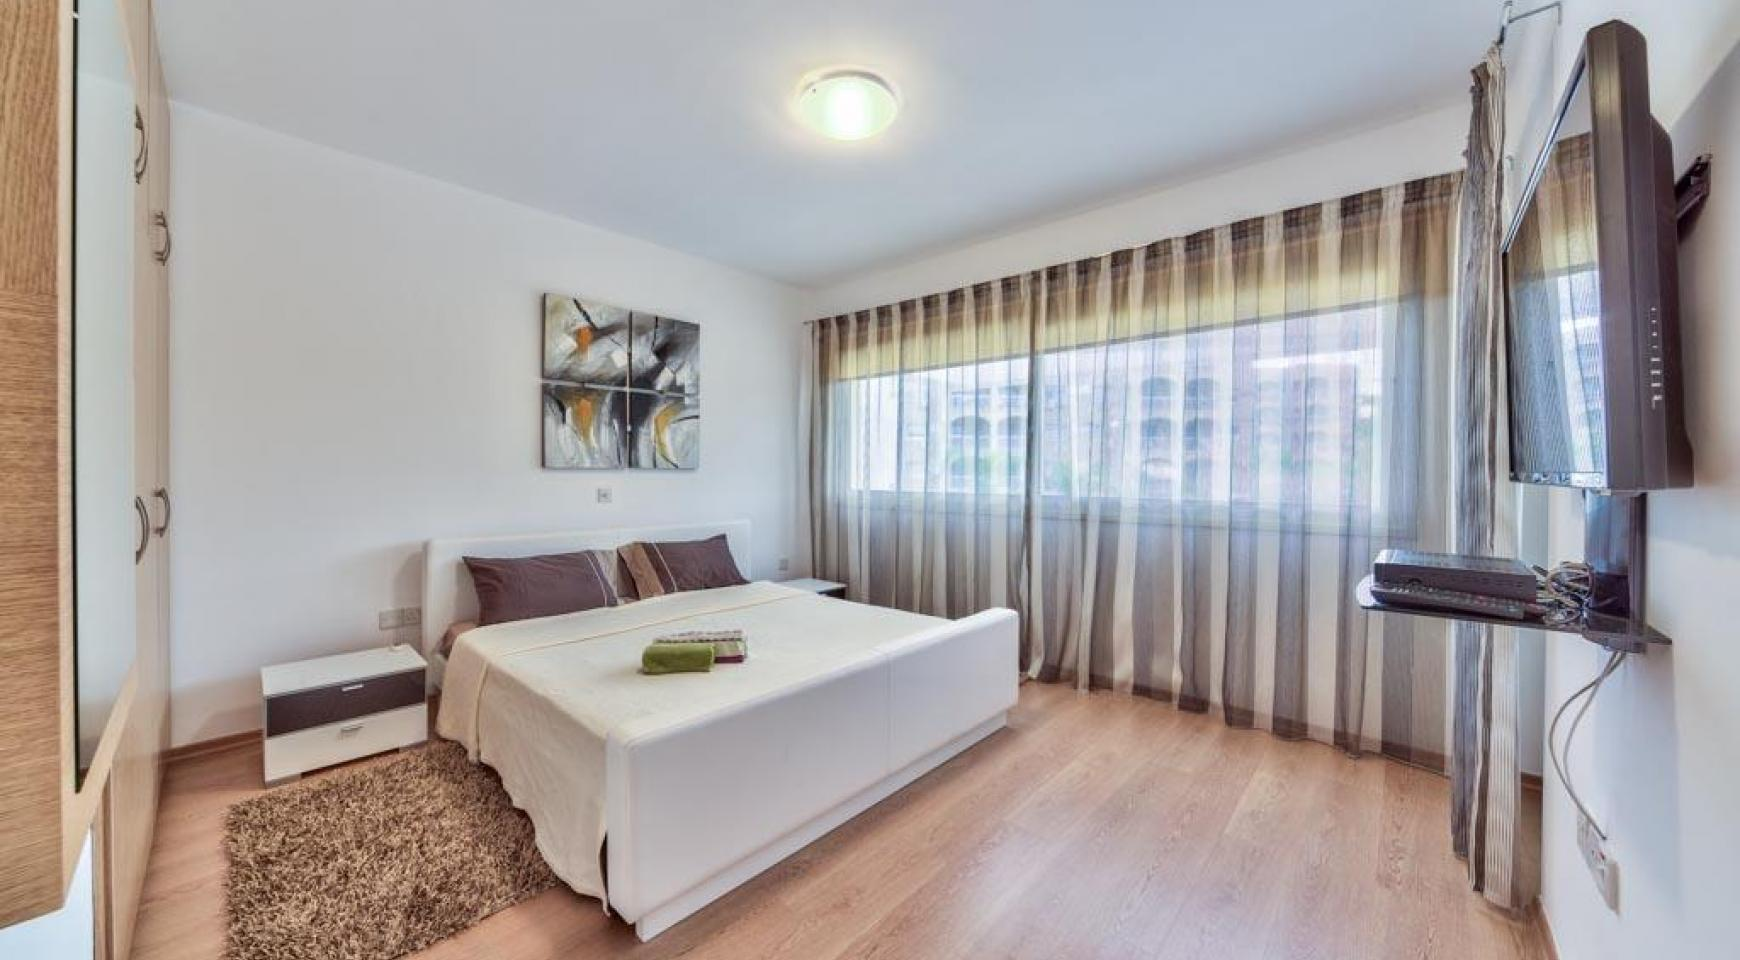 3 Bedroom Apartment in the Centre of the Tourist Area - 8